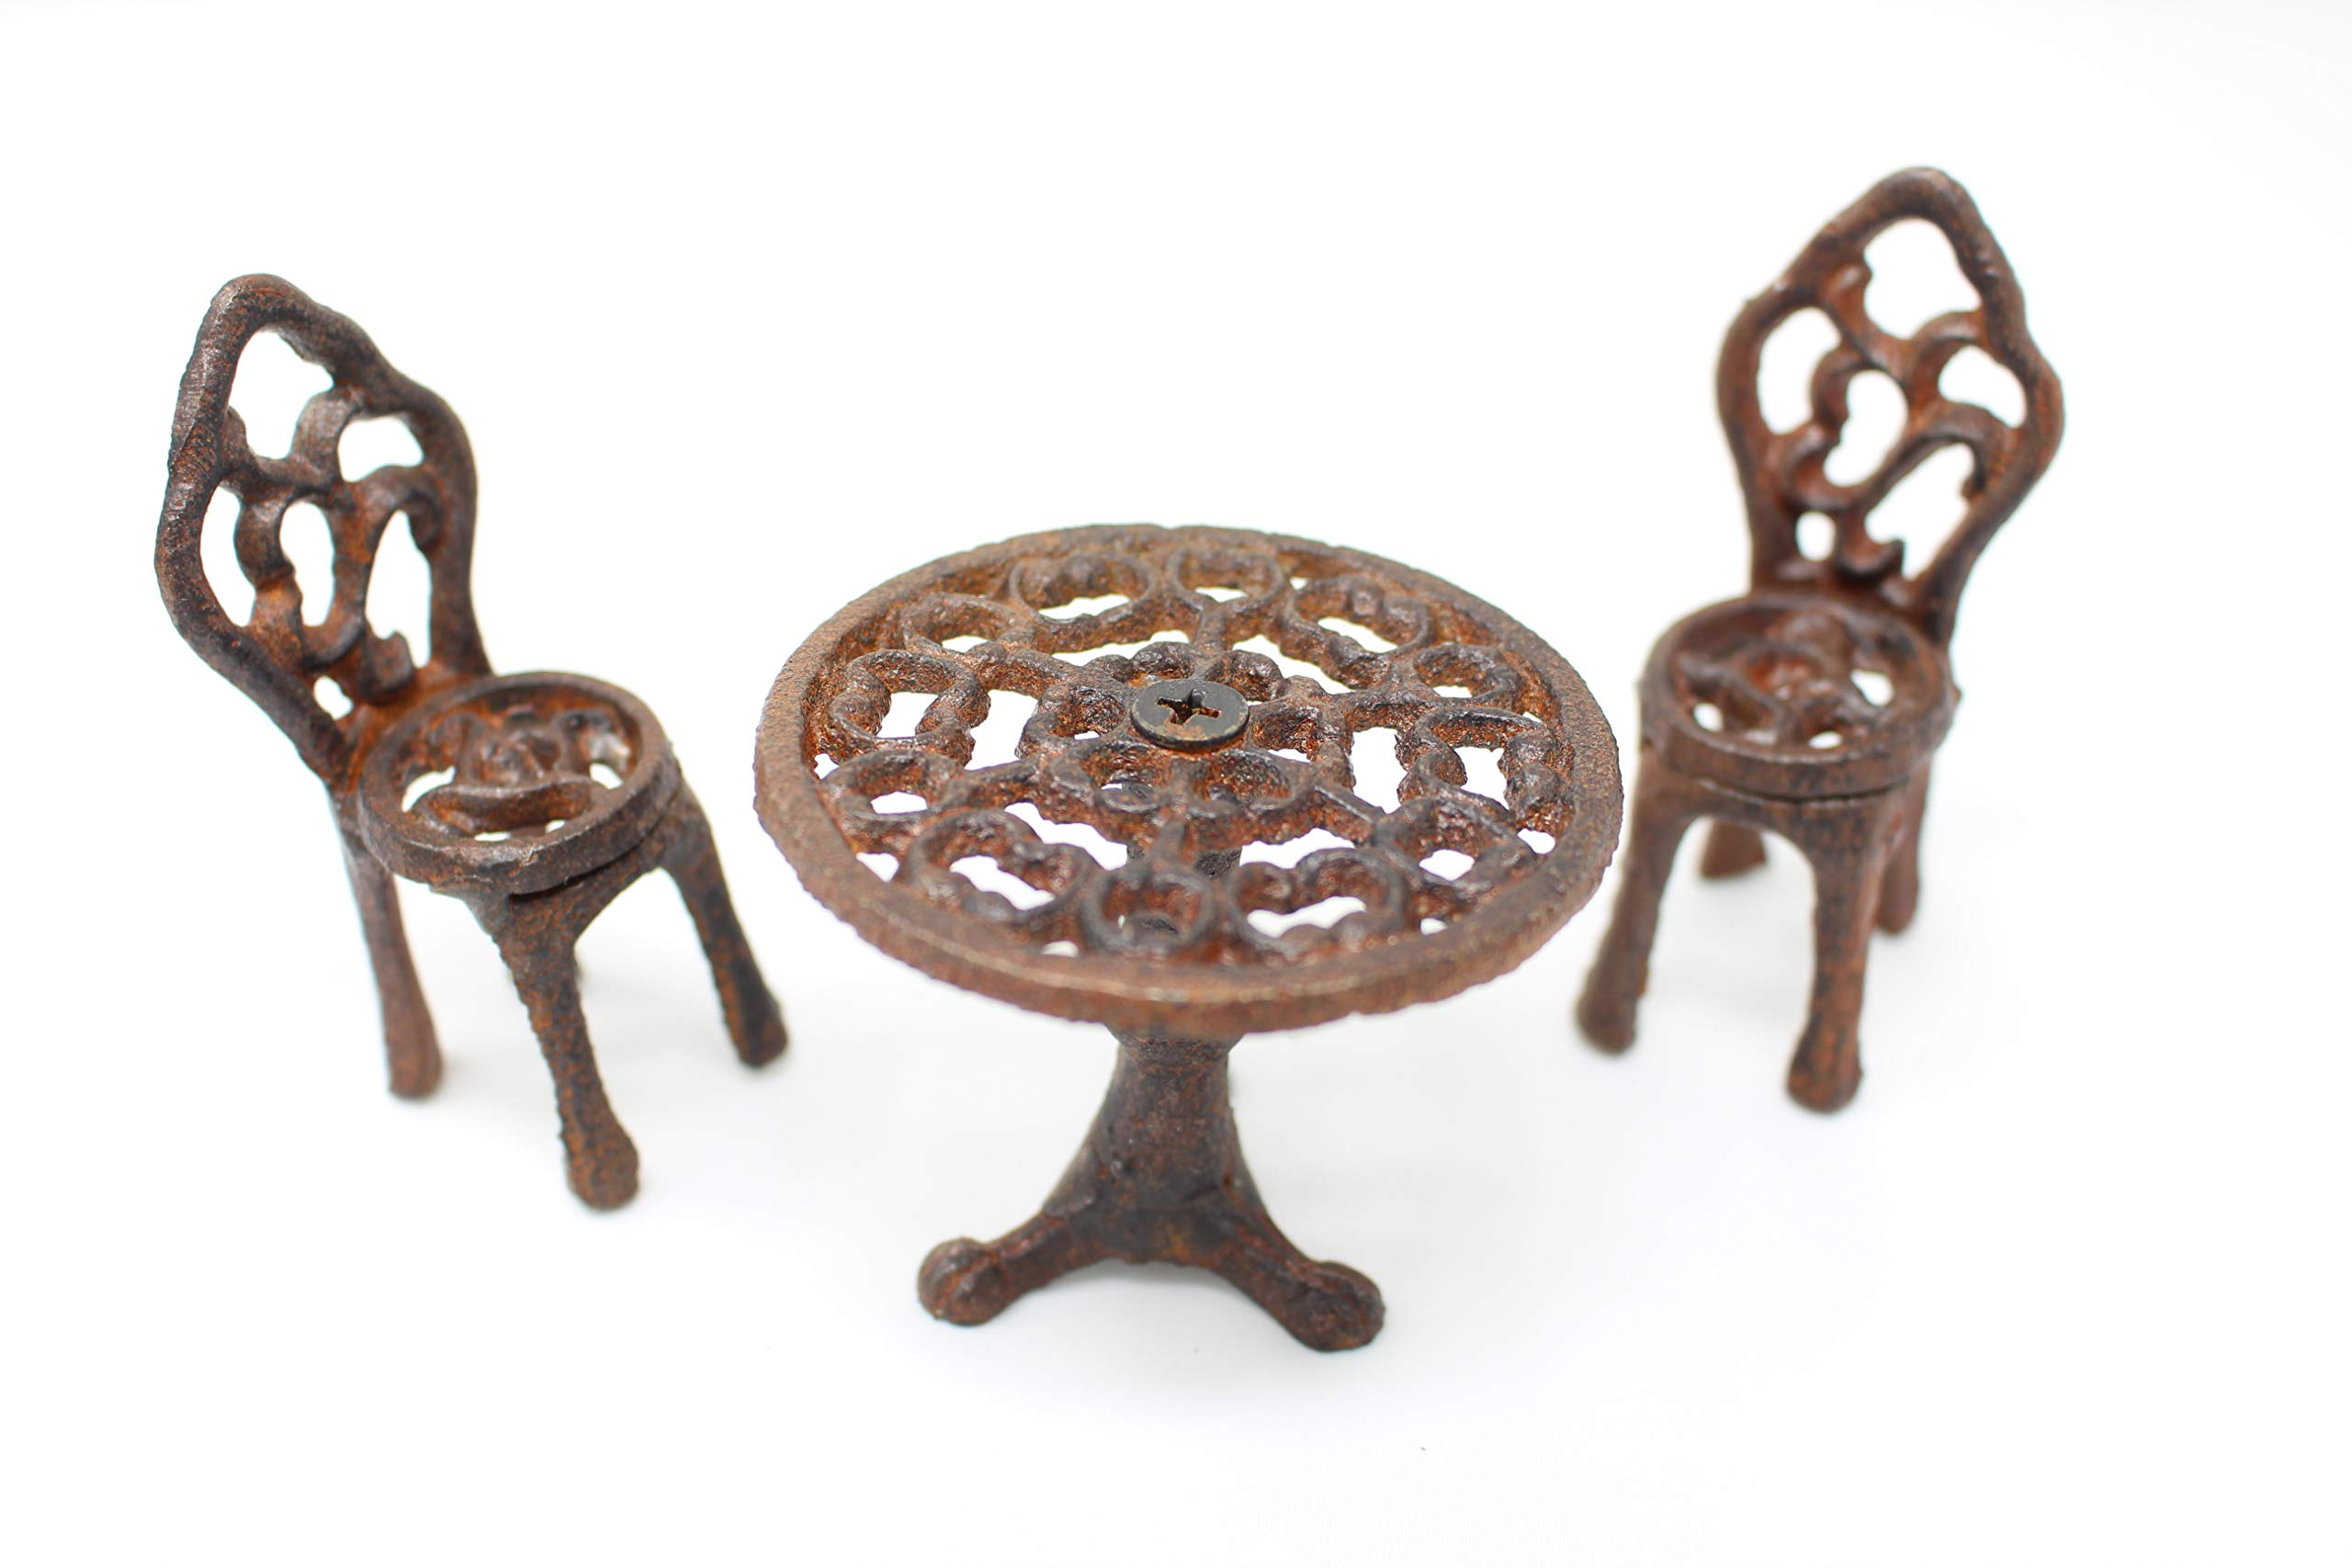 Chalily Miniature Garden Bistro Table with Chairs - Cast Iron